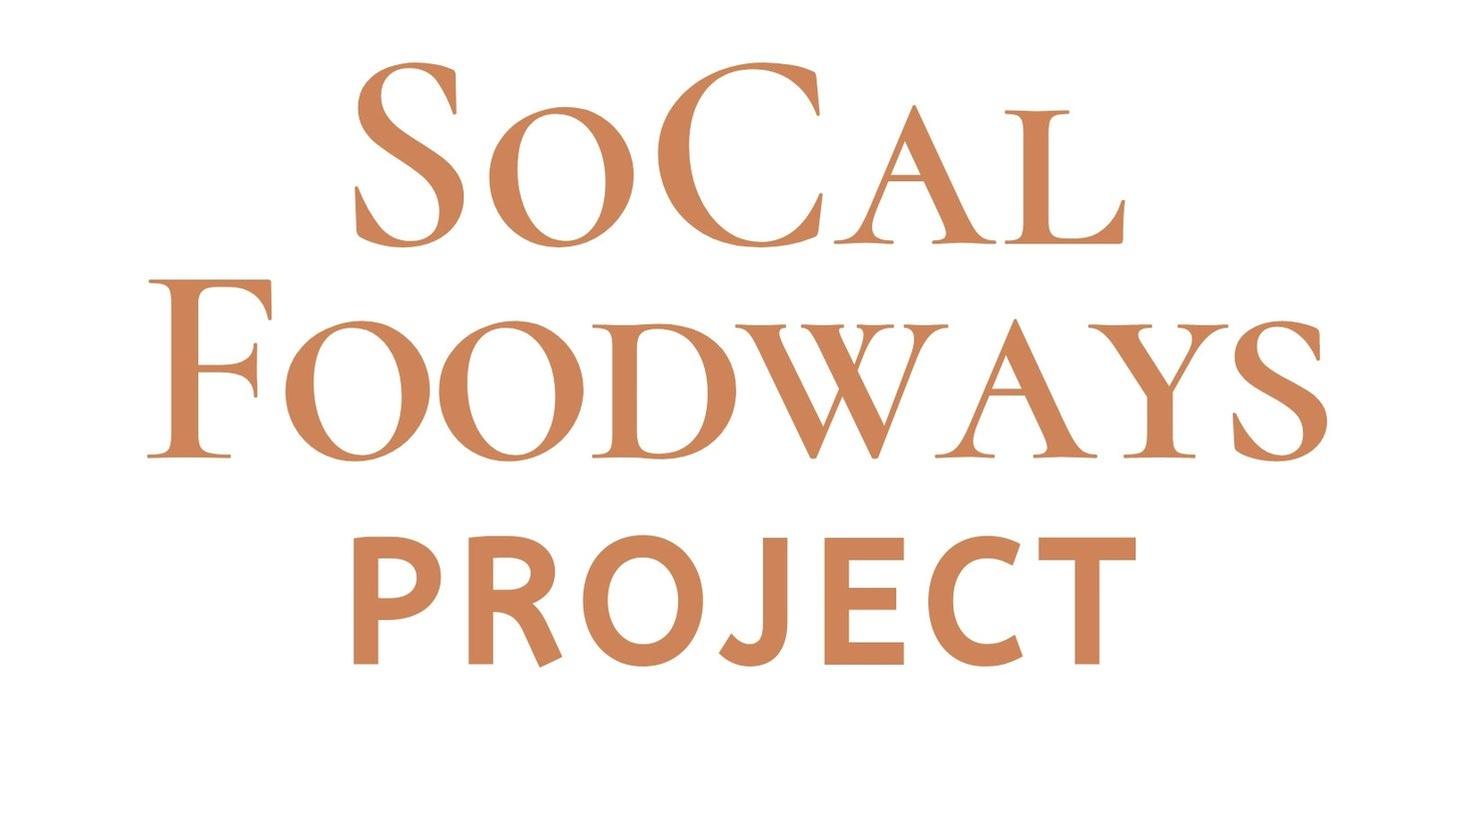 The Southern California Foodways Project will host its first symposium on October 11, 2019.